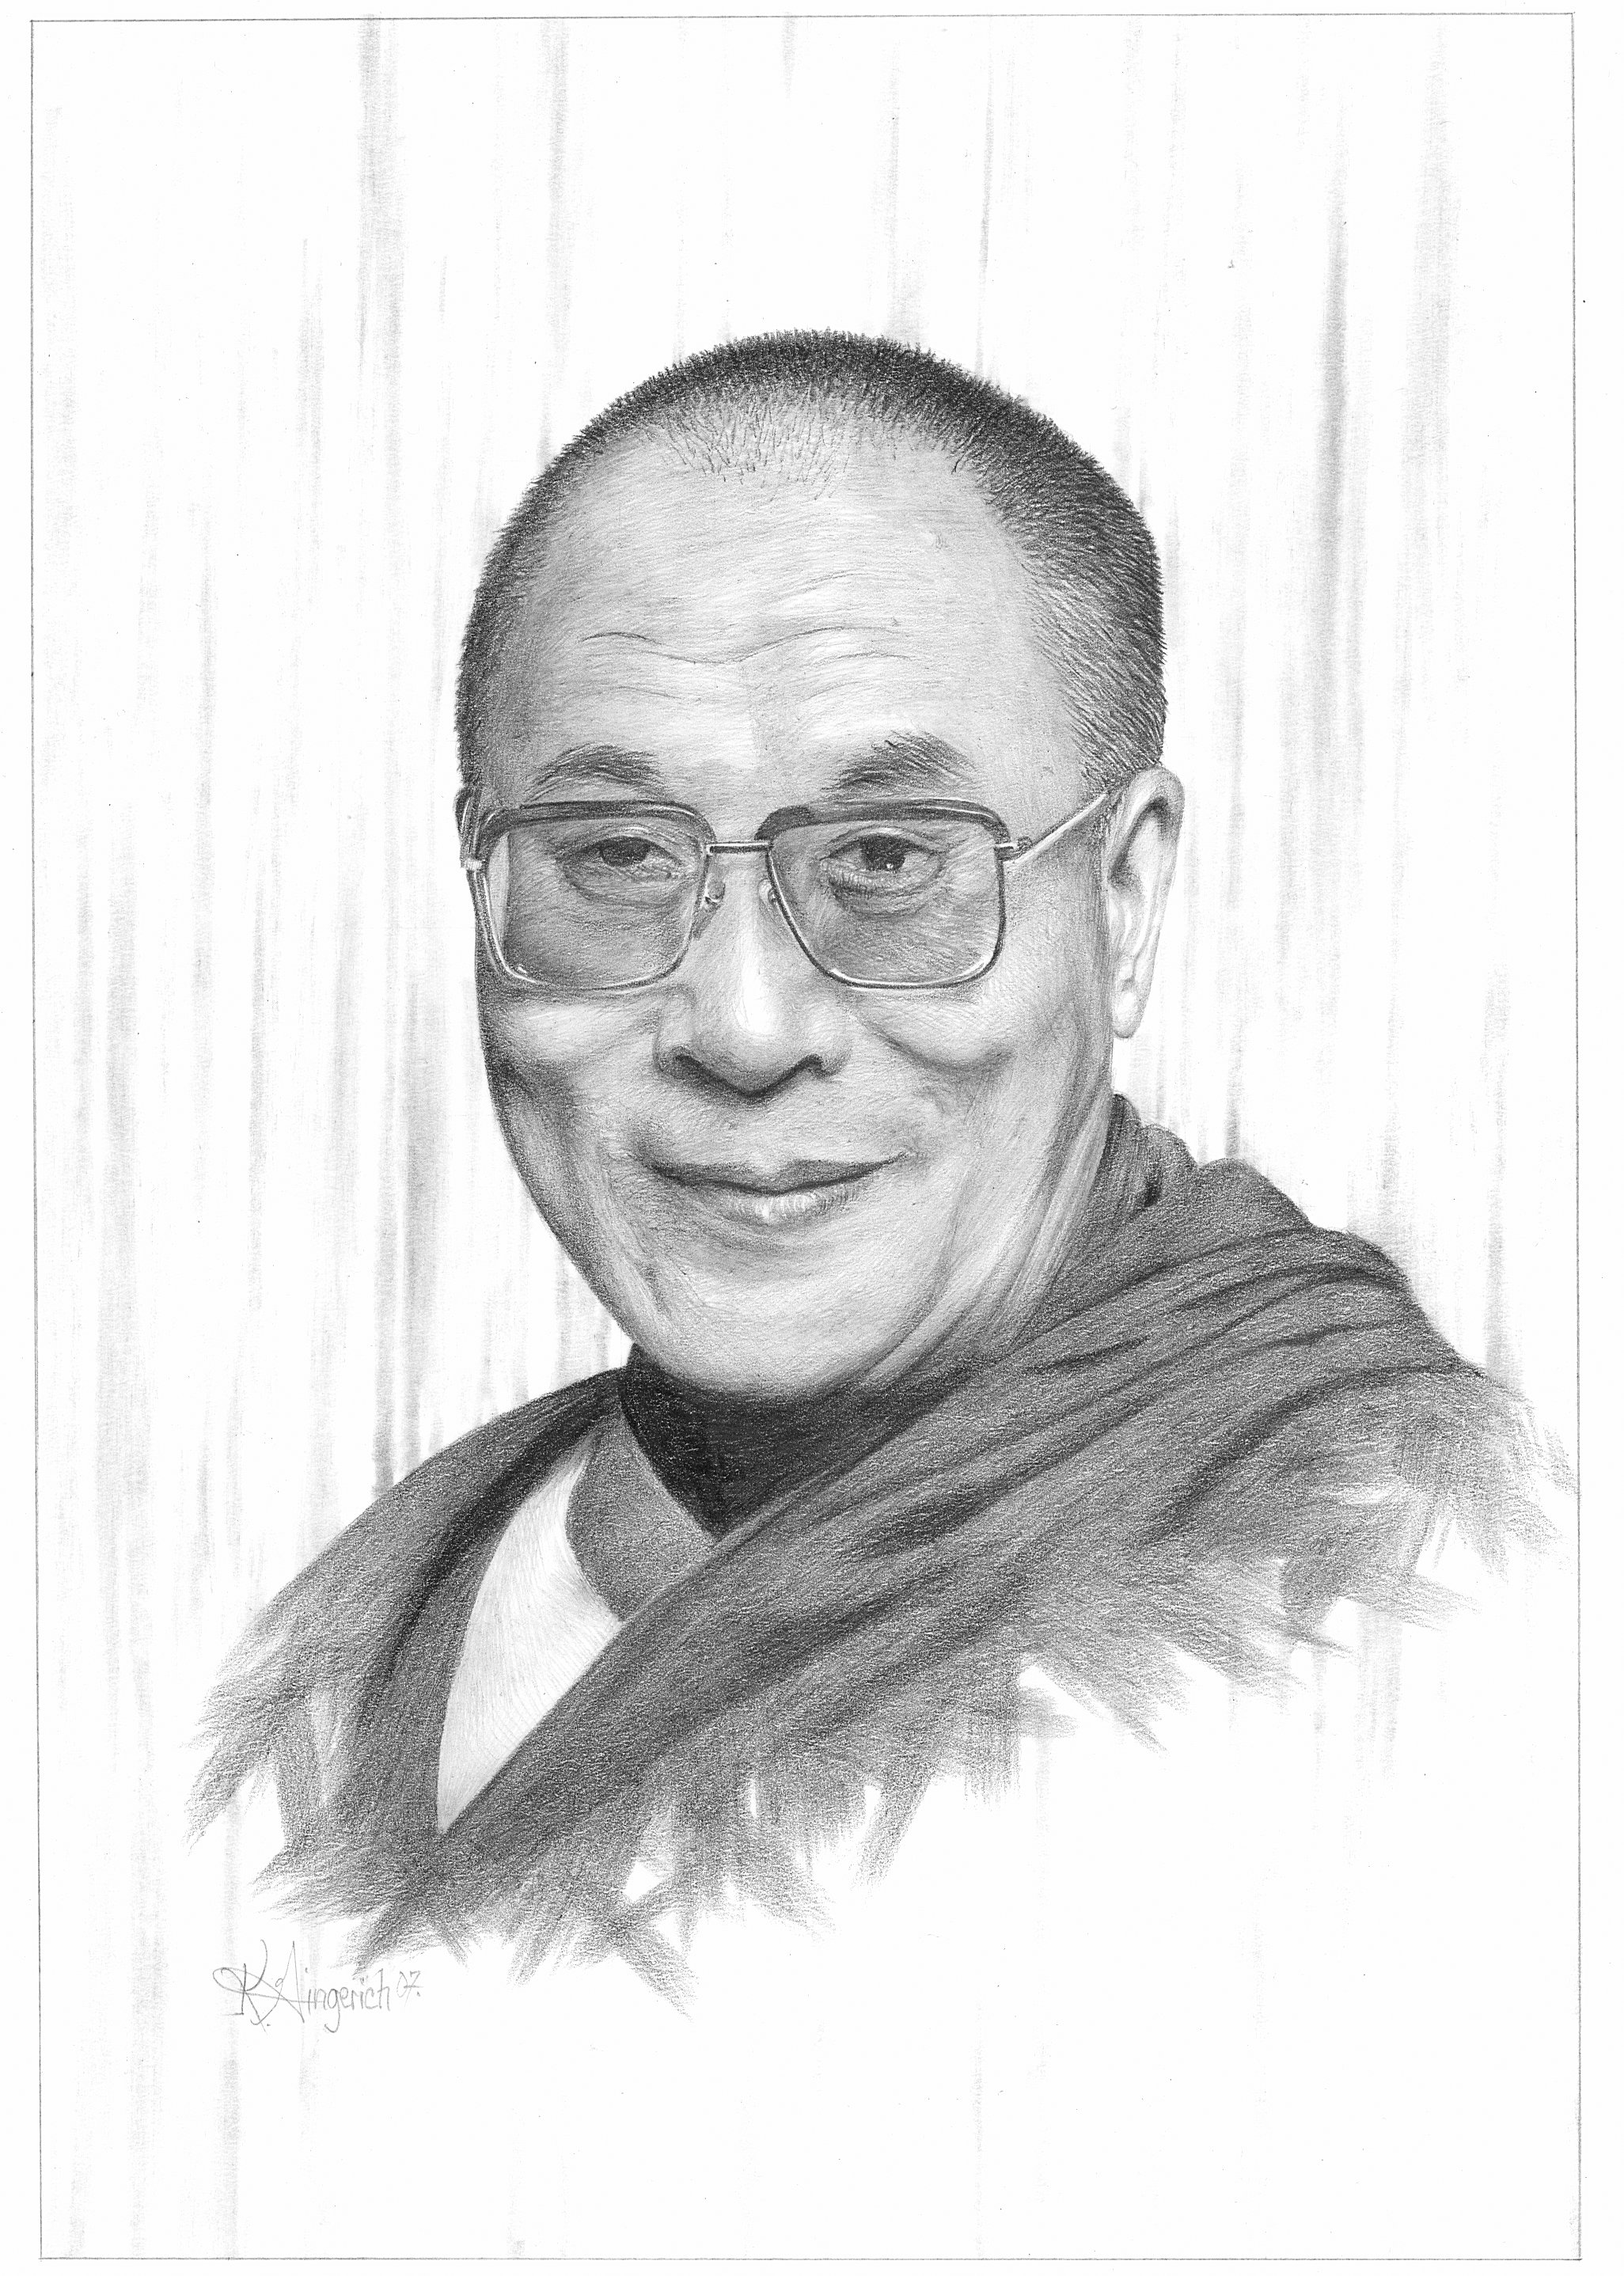 tenzin gyatso 14th dalai lama essay The dalai lama has made many contributions to buddhism and has changed it   we will write a custom essay sample on tenzin gyatso 14th dalai lama and his.